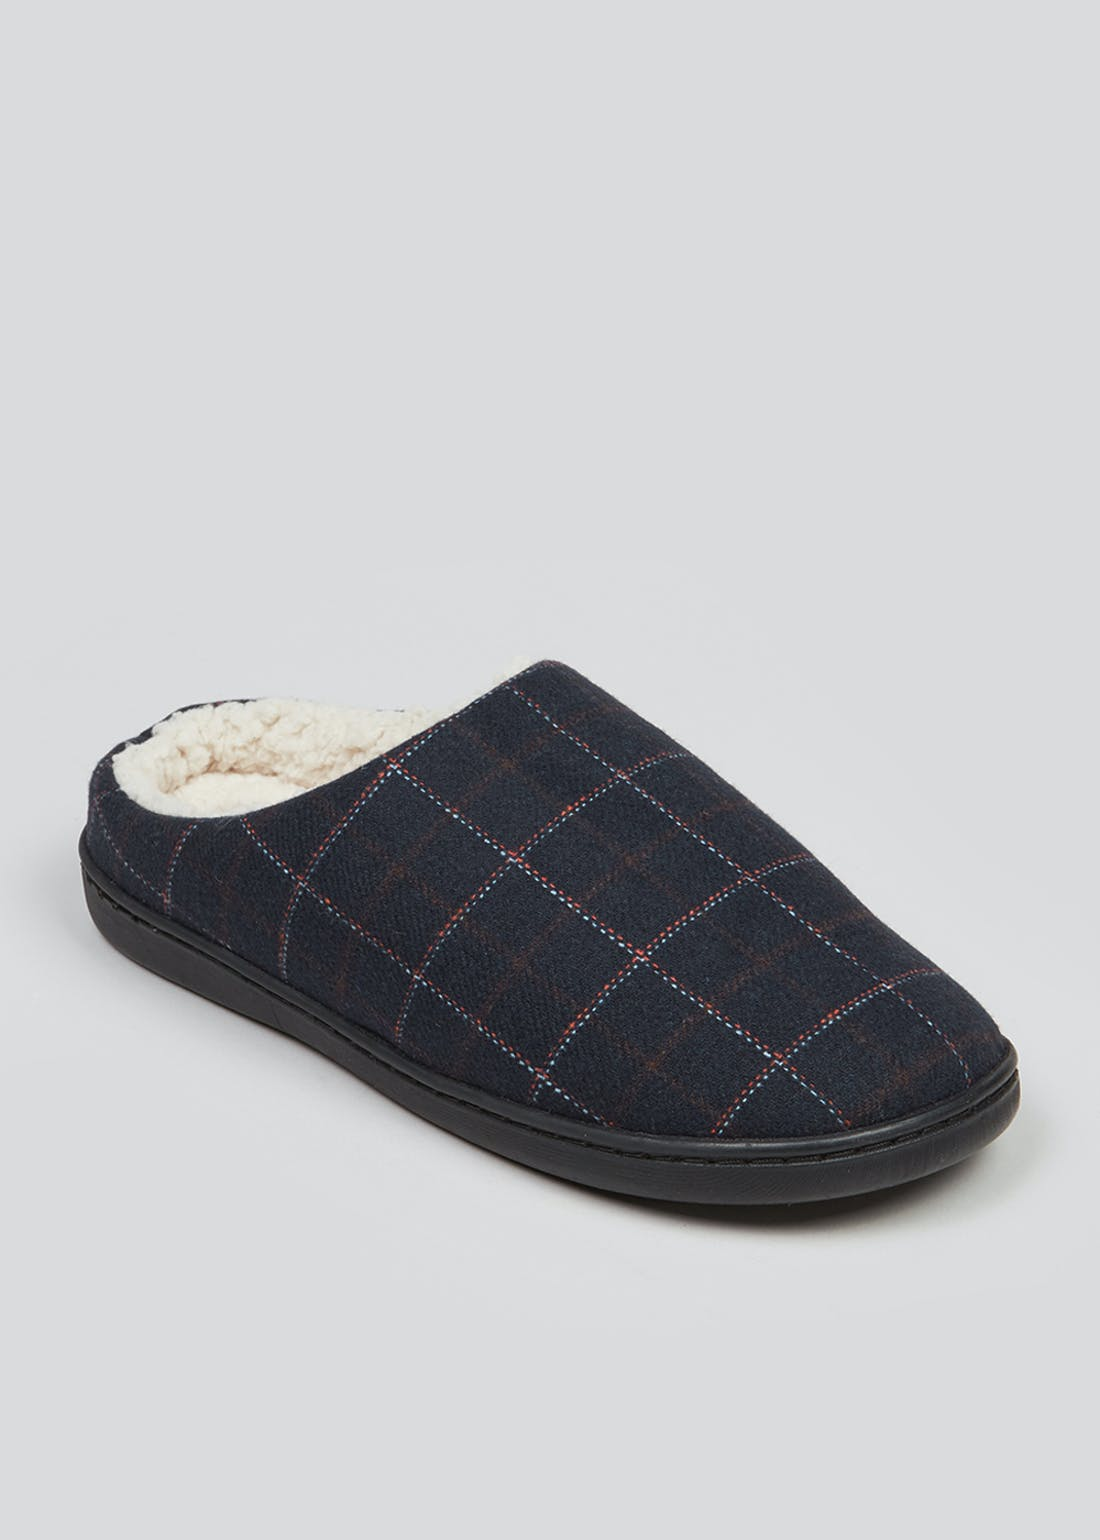 Navy Check Memory Foam Slippers